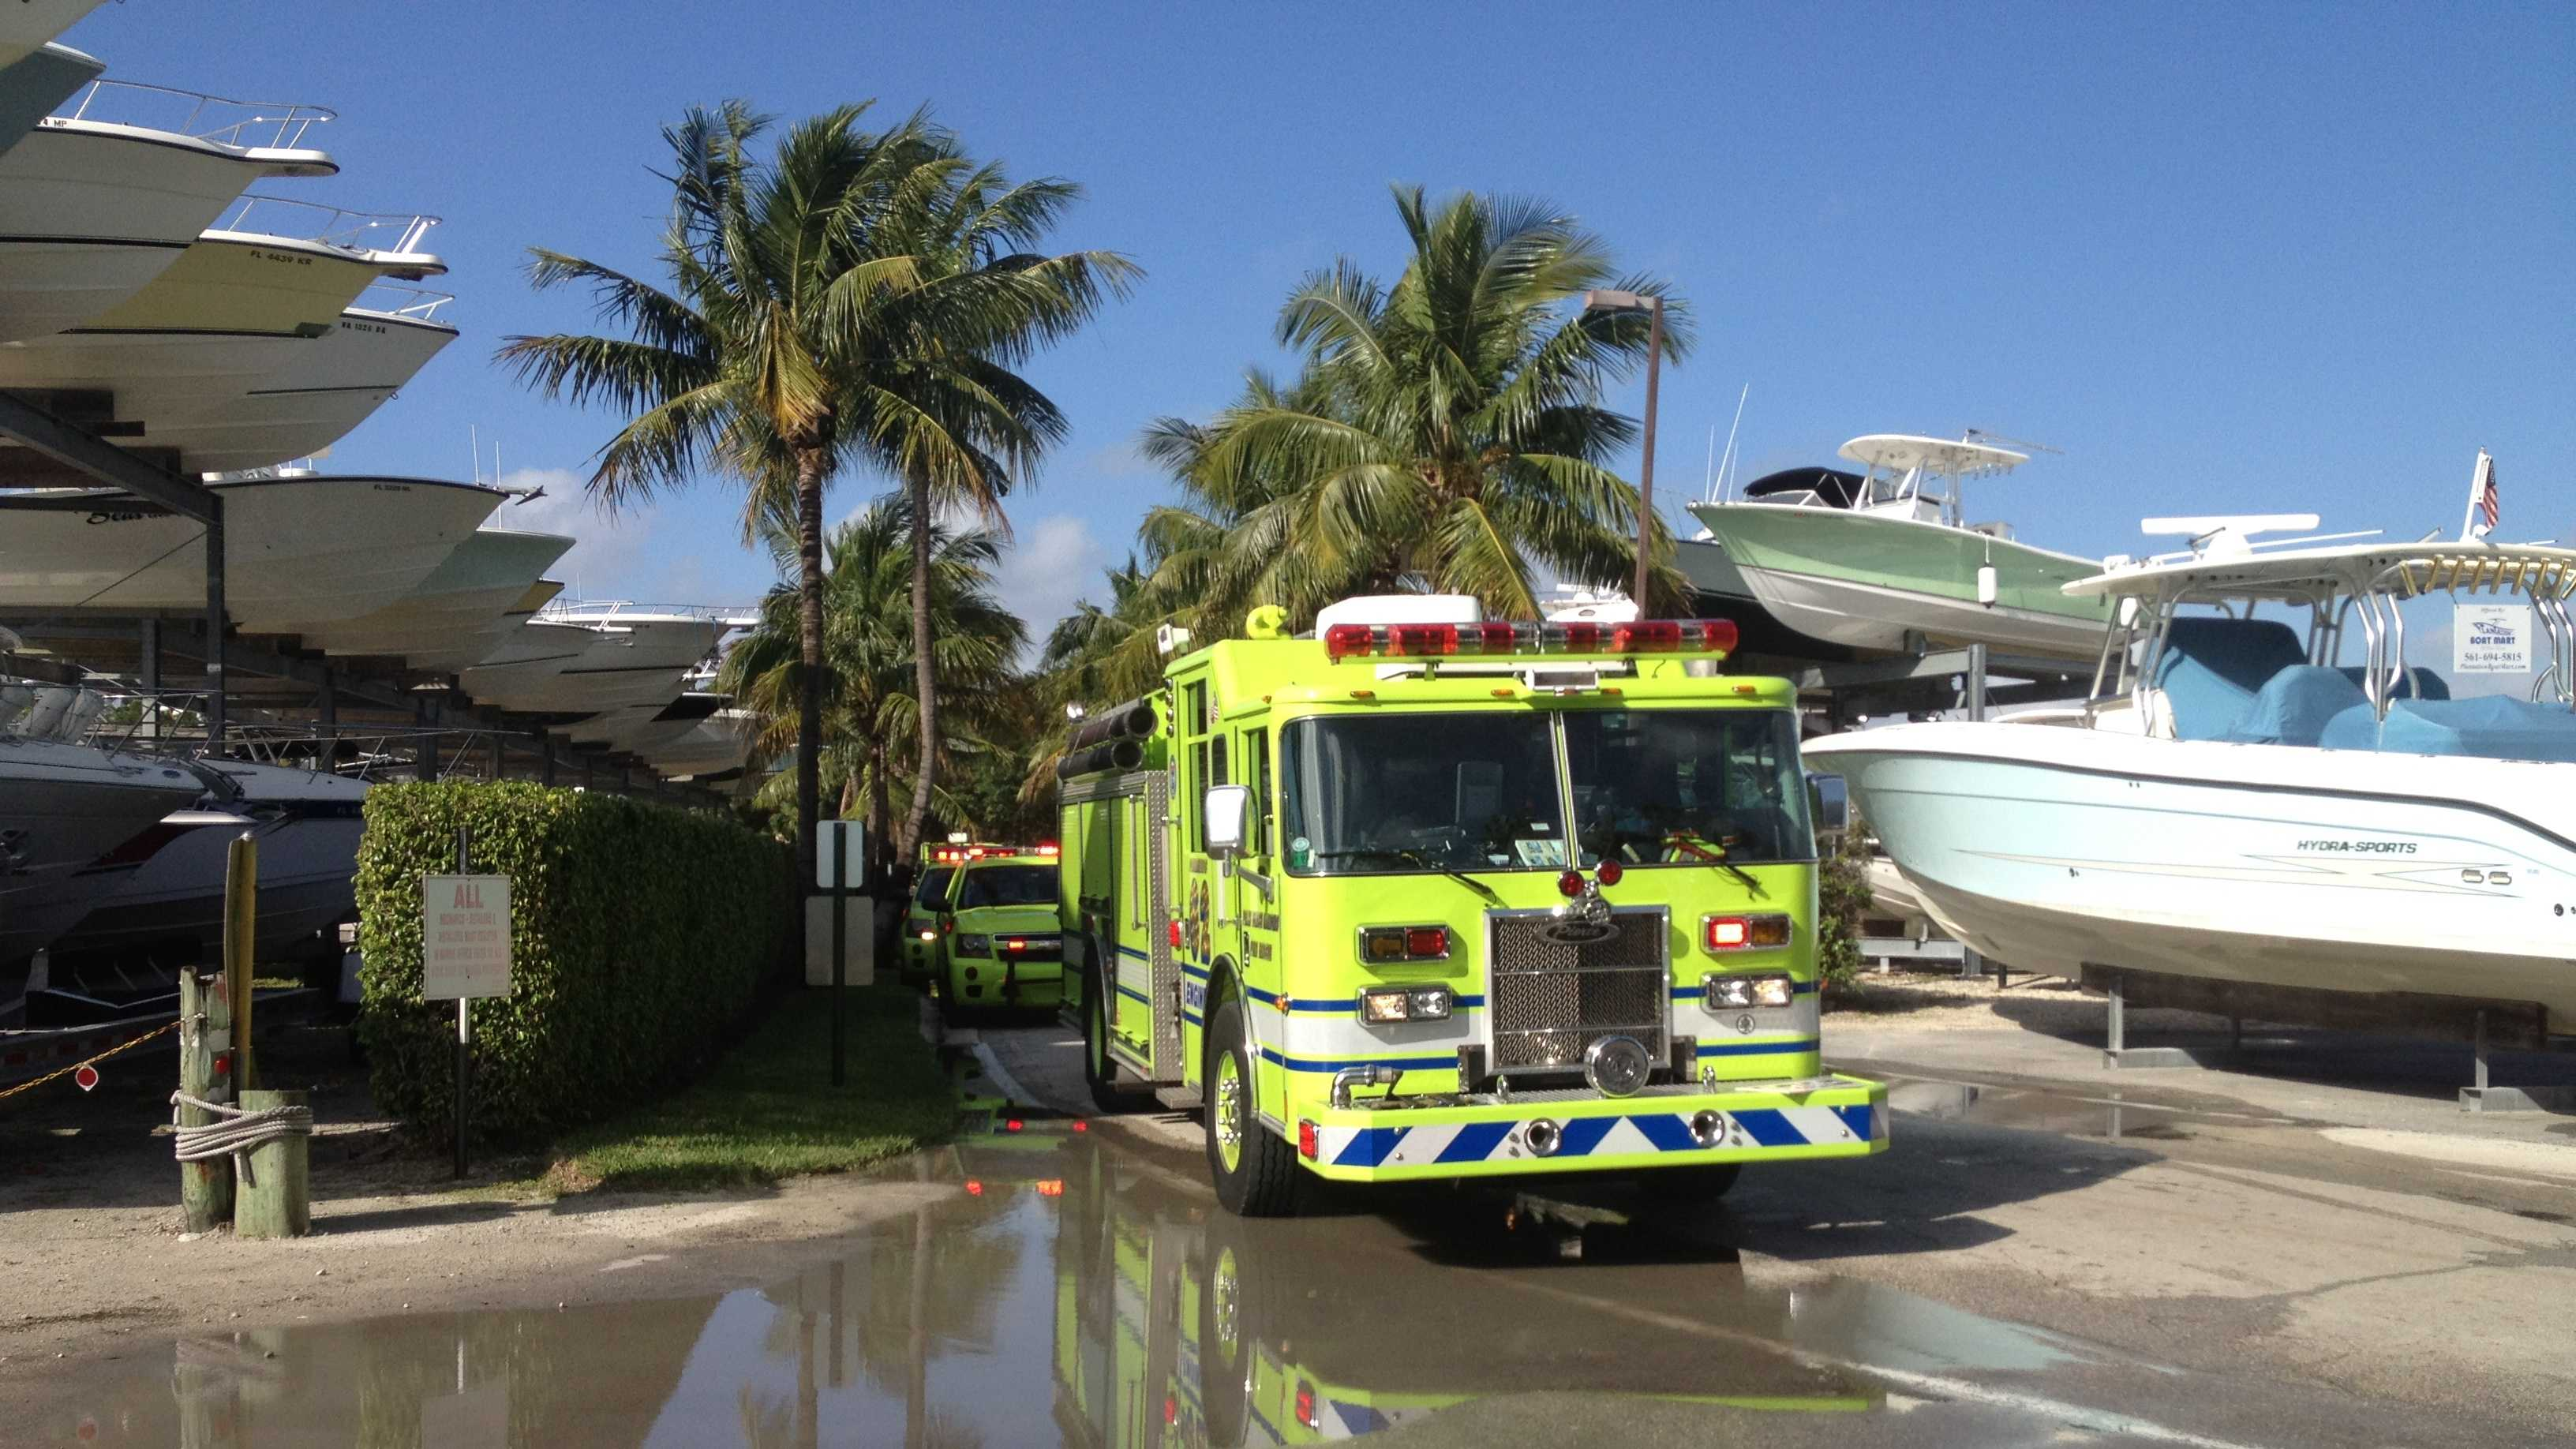 Firefighters are trying to determine what caused a small boat to explode at the PGA Marina.